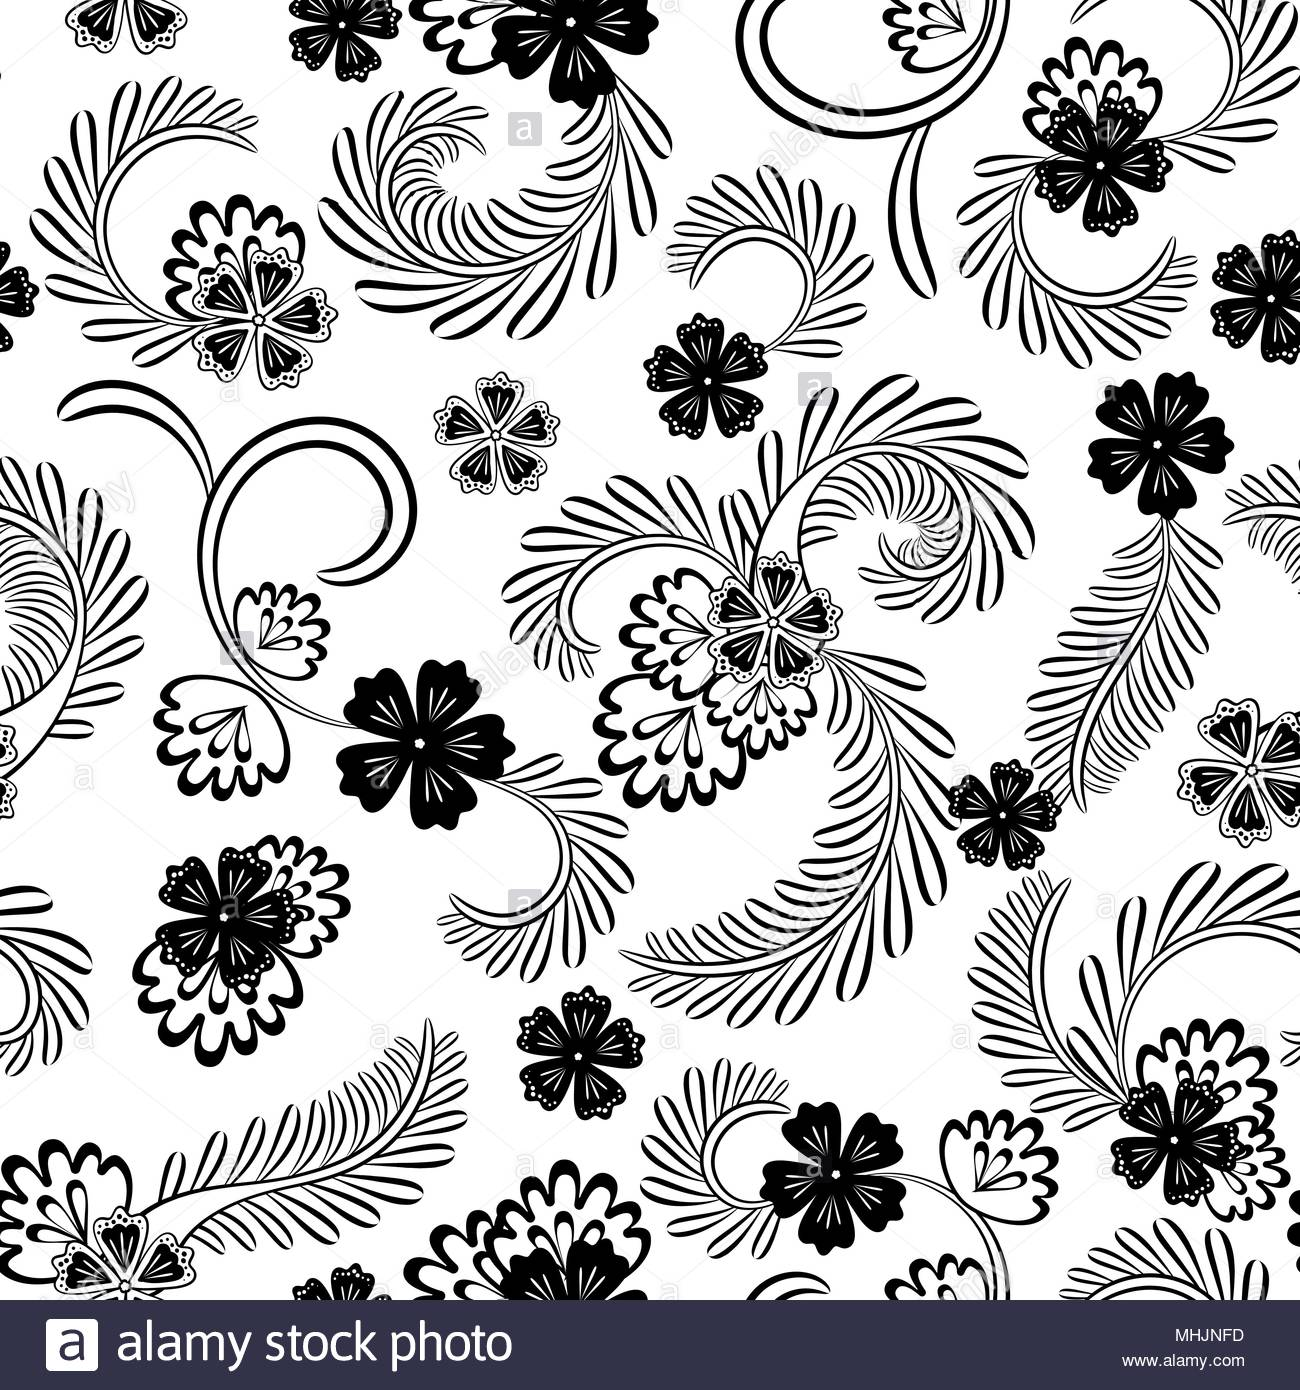 Vintage Seamless Black And White Floral Pattern On A Black